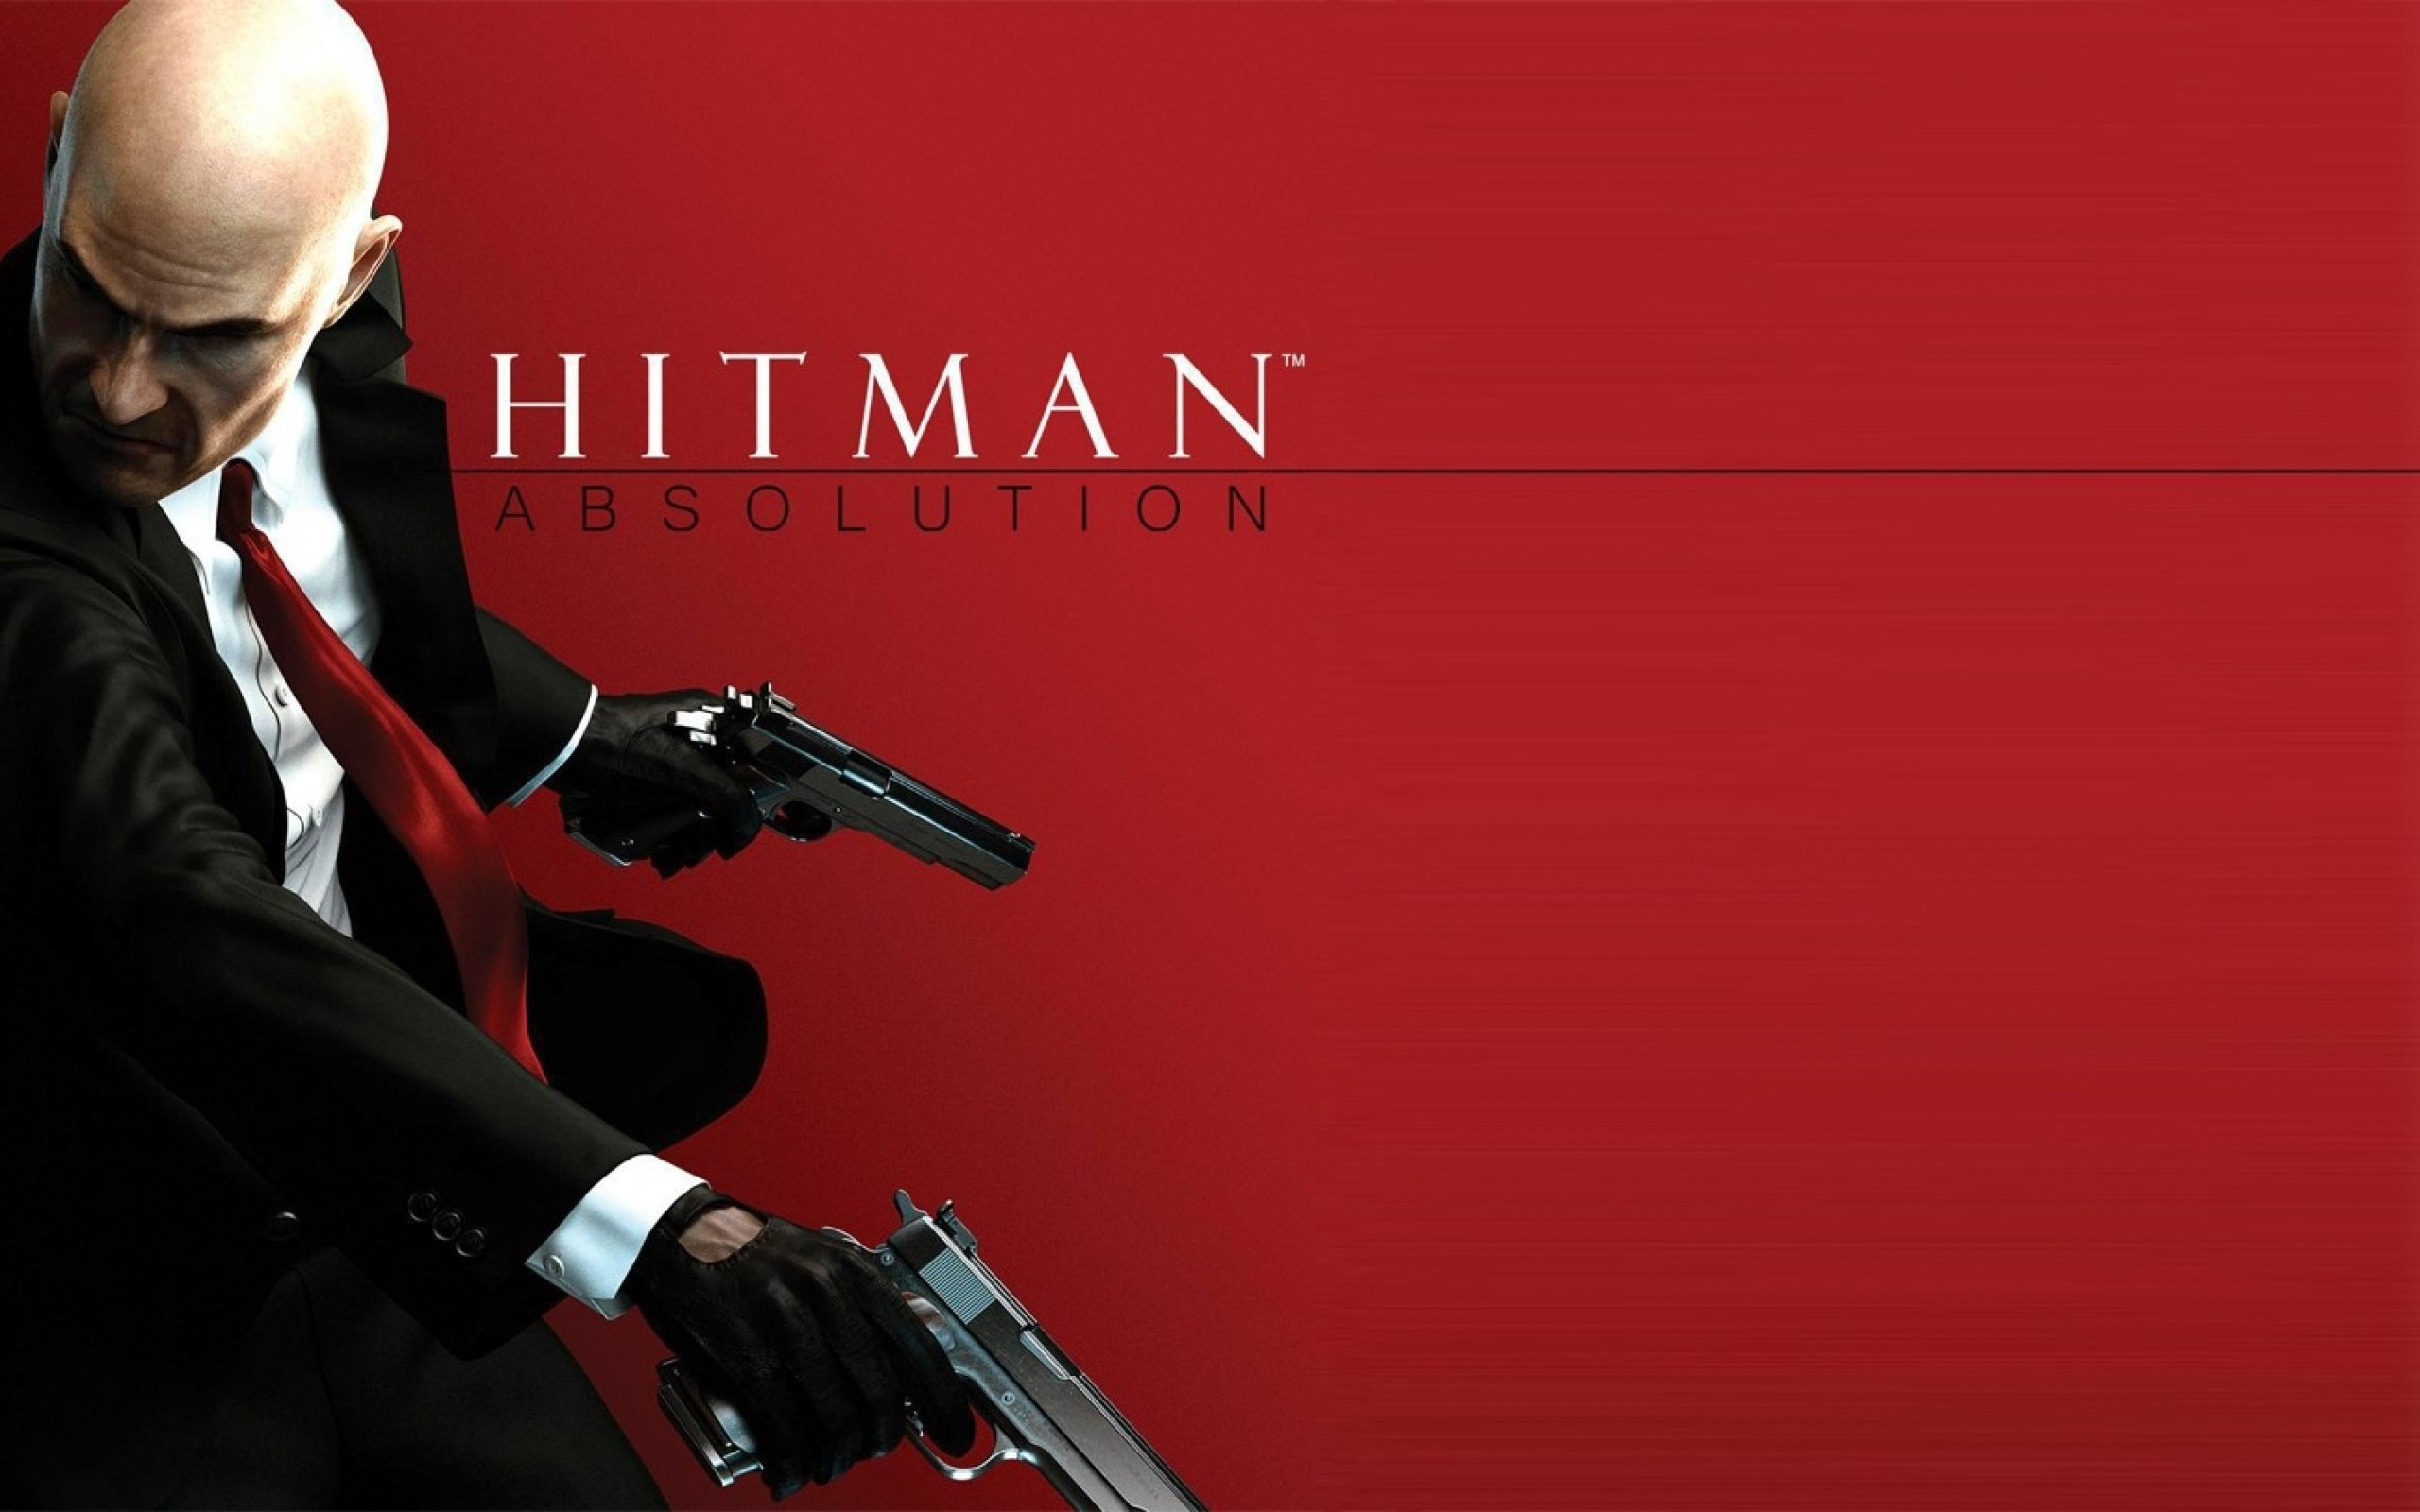 Hitman Absolution (PHOTO) RU VERSION